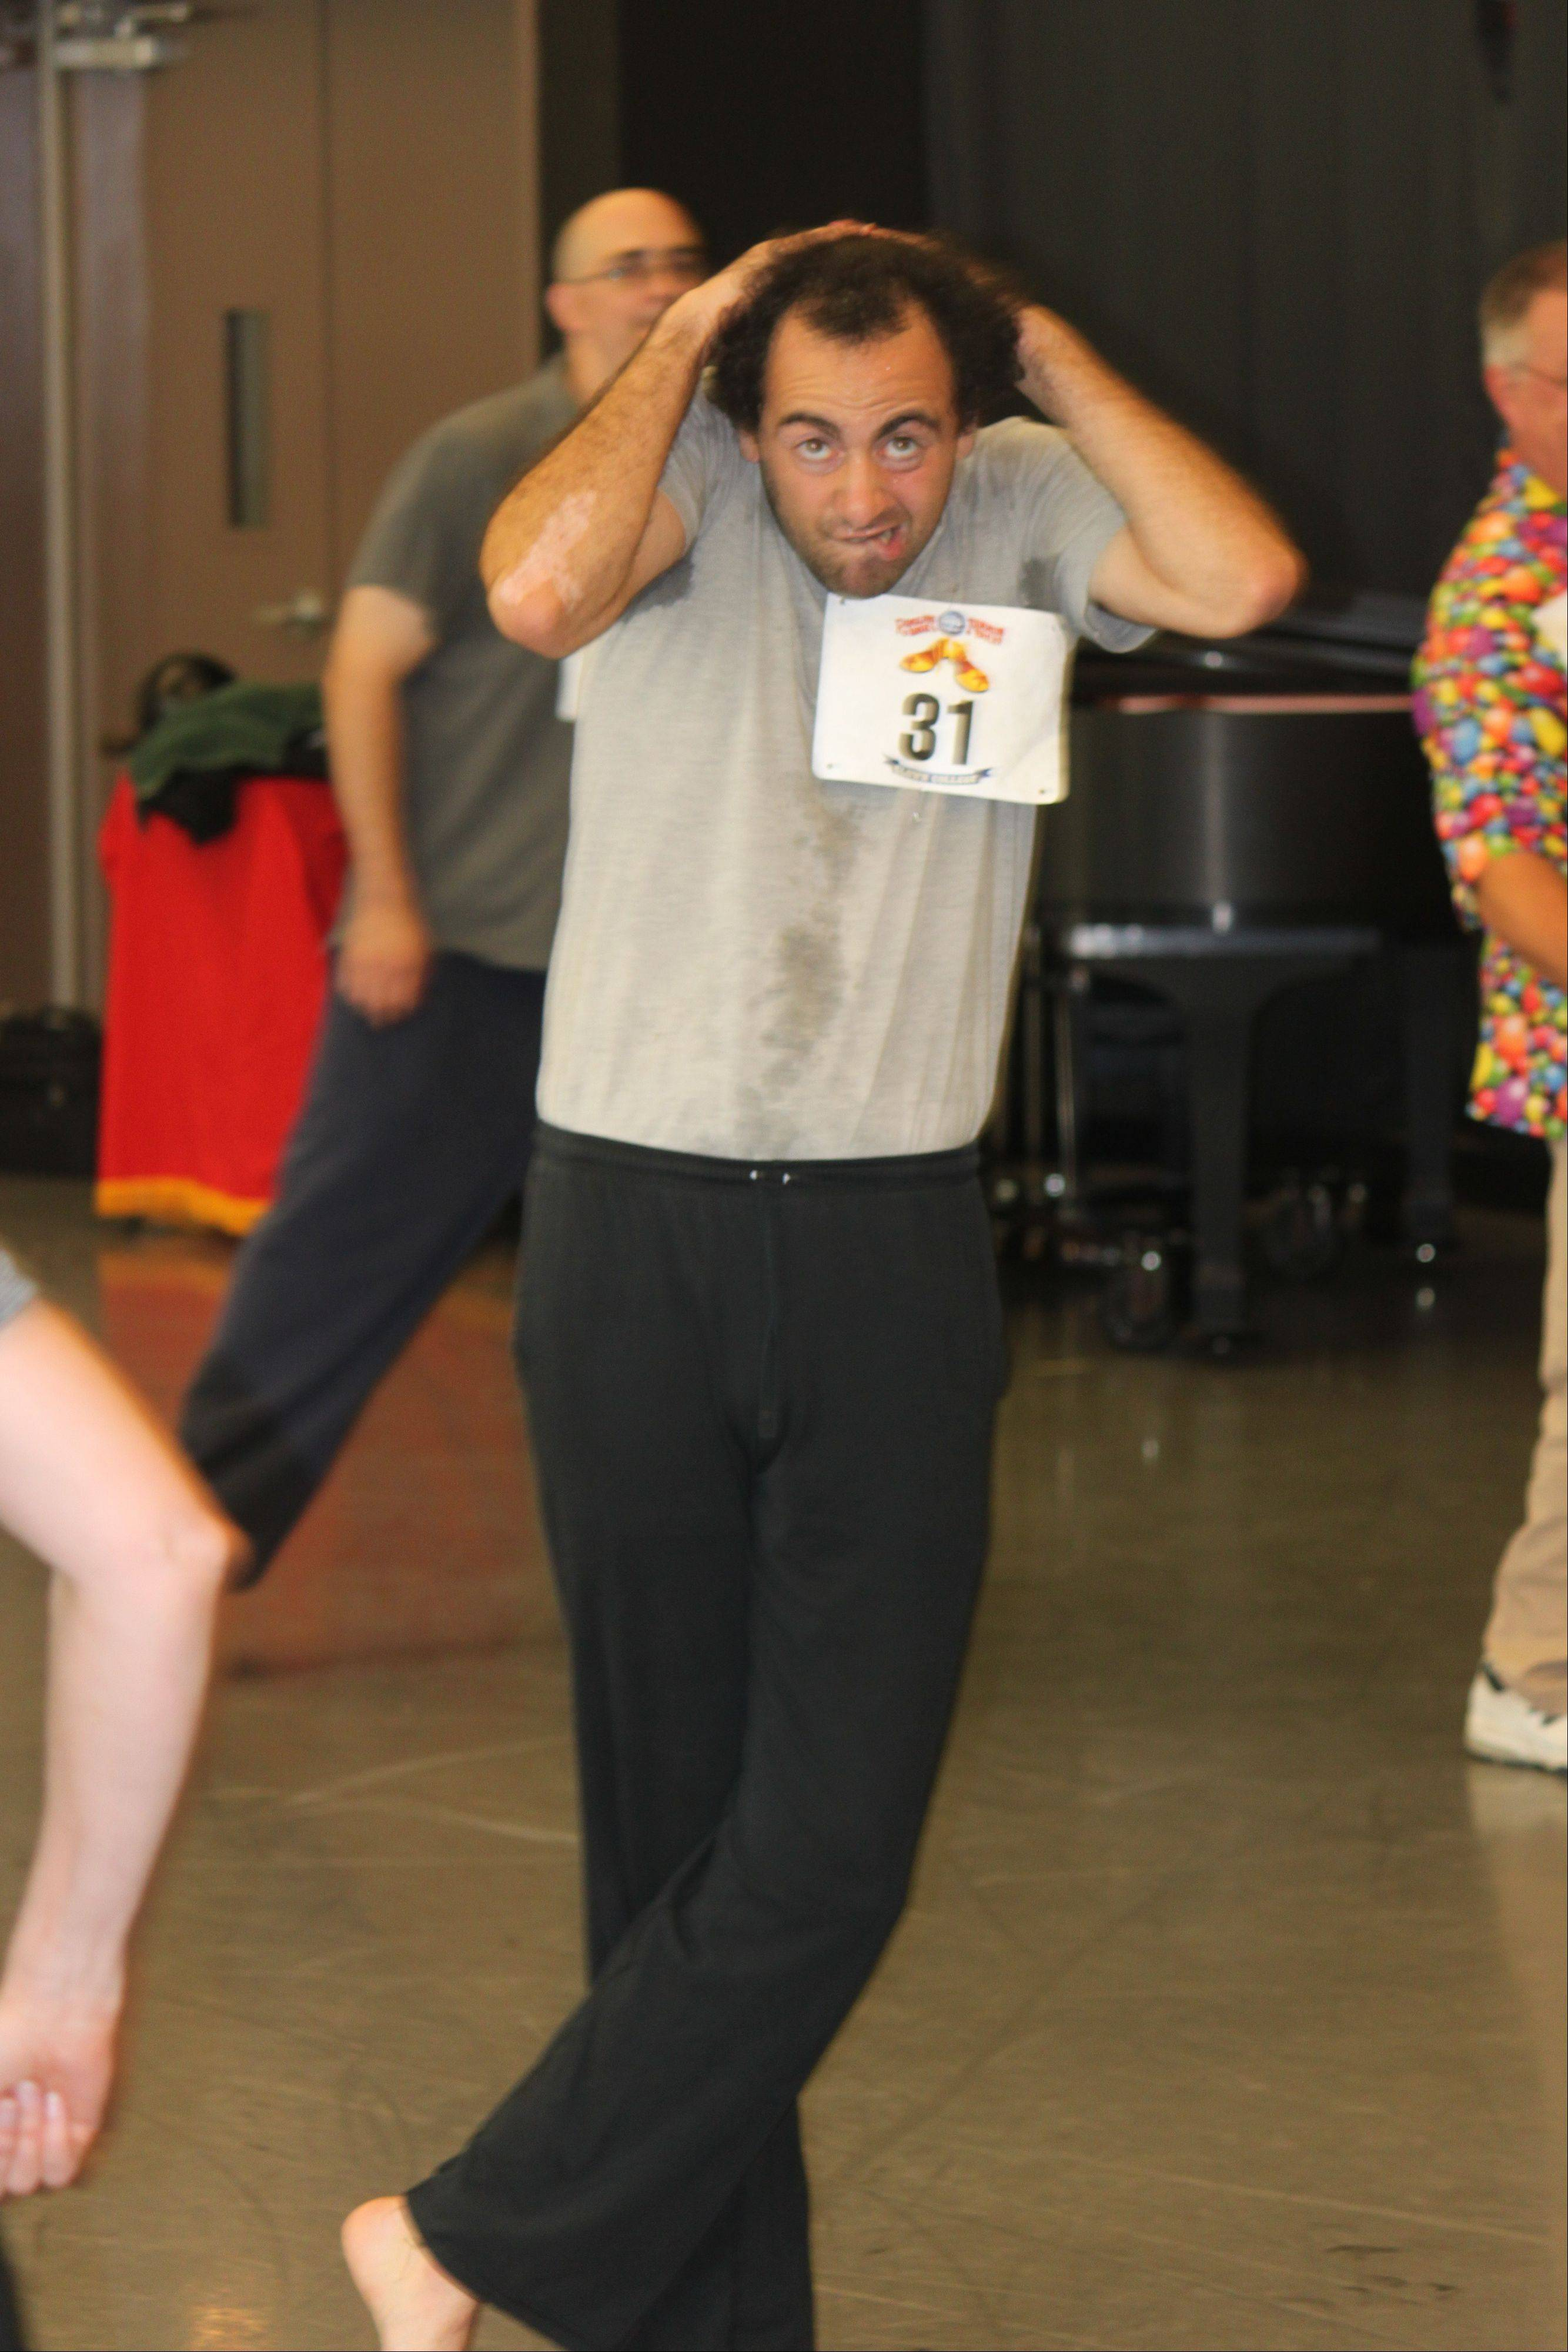 Alex Suha takes part in auditions at the Joffrey Ballet building in Chicago for Clown College, the training ground for all clowns with the Ringling Bros. and Barnum & Bailey circus.